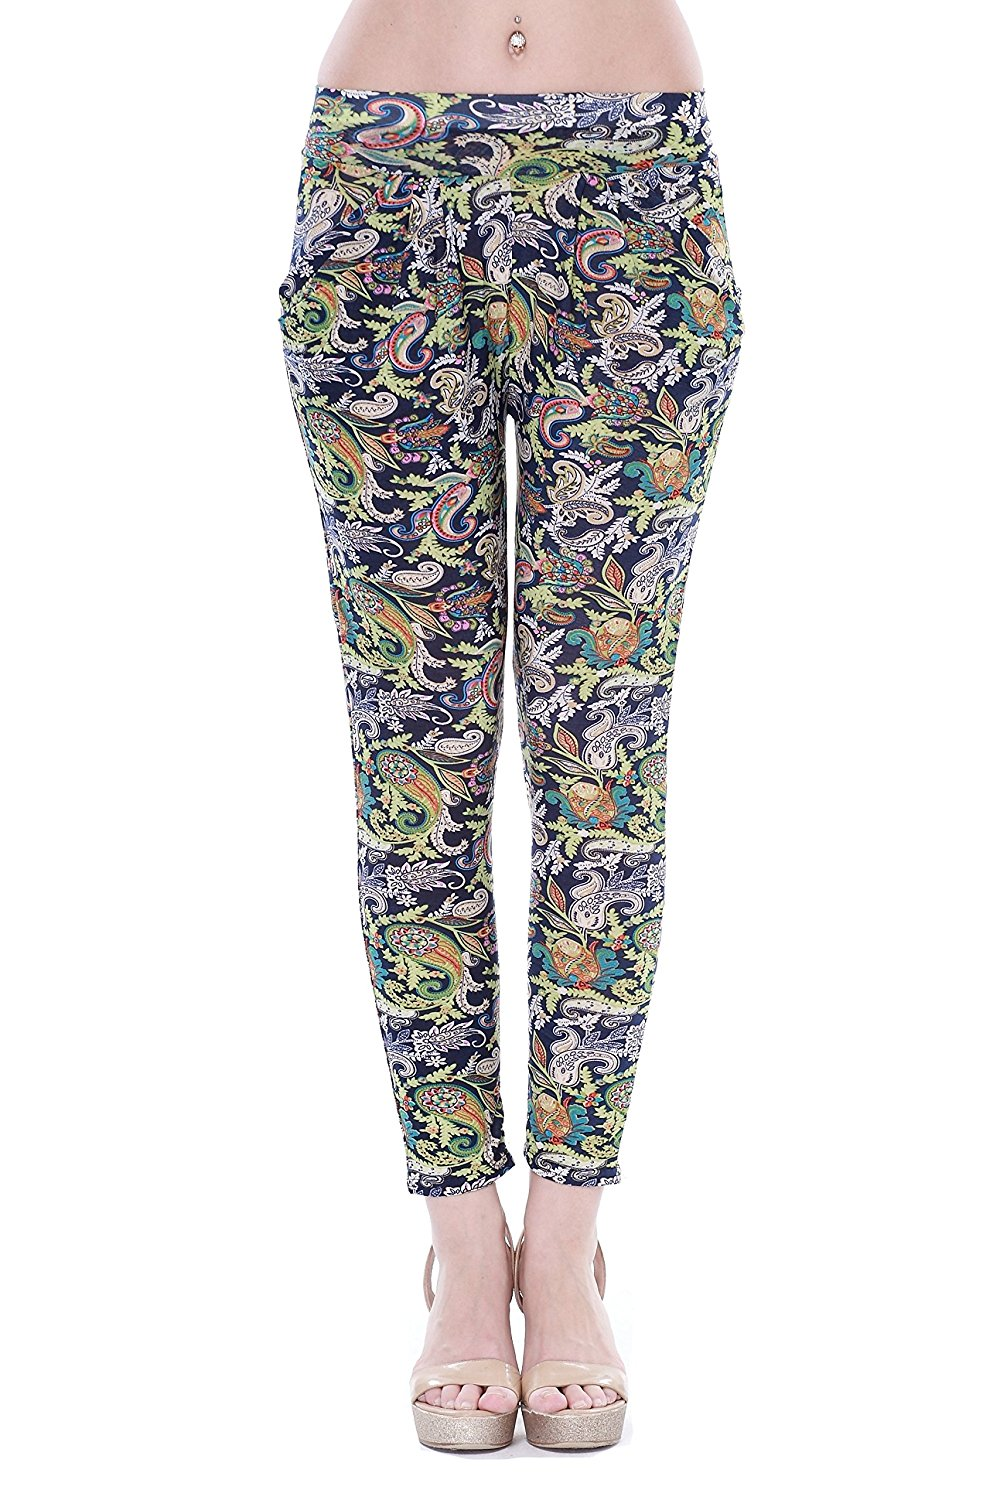 6d1be9595b9a Get Quotations · Hawaii Hangover Women s Hawaiian Floral Elastic Waist  Skinny Pull On Pants Black With Green Floral